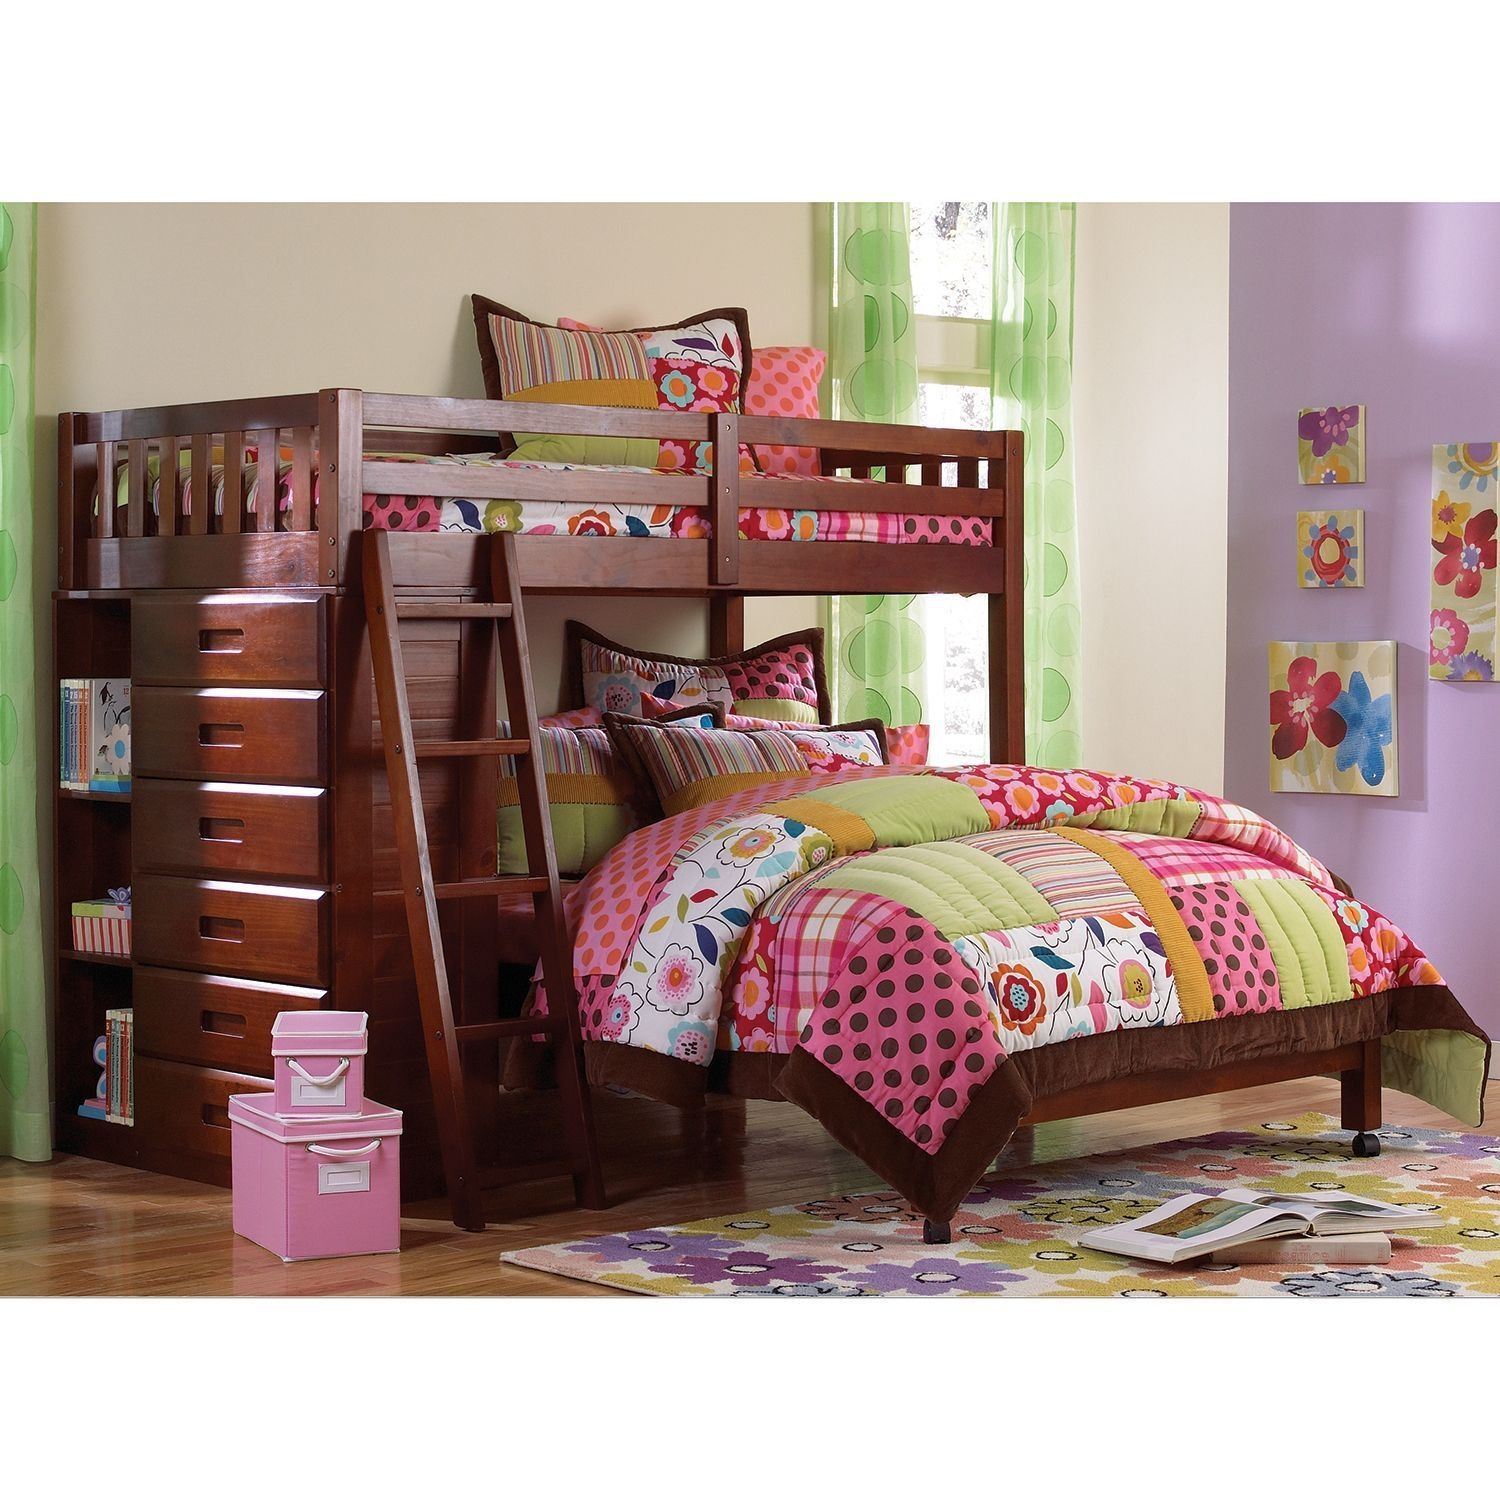 Loft Bed Twin Over Full With Five Drawer Chest Merlot  Sam'S Club  Loft Bunk Beds Bunk Beds